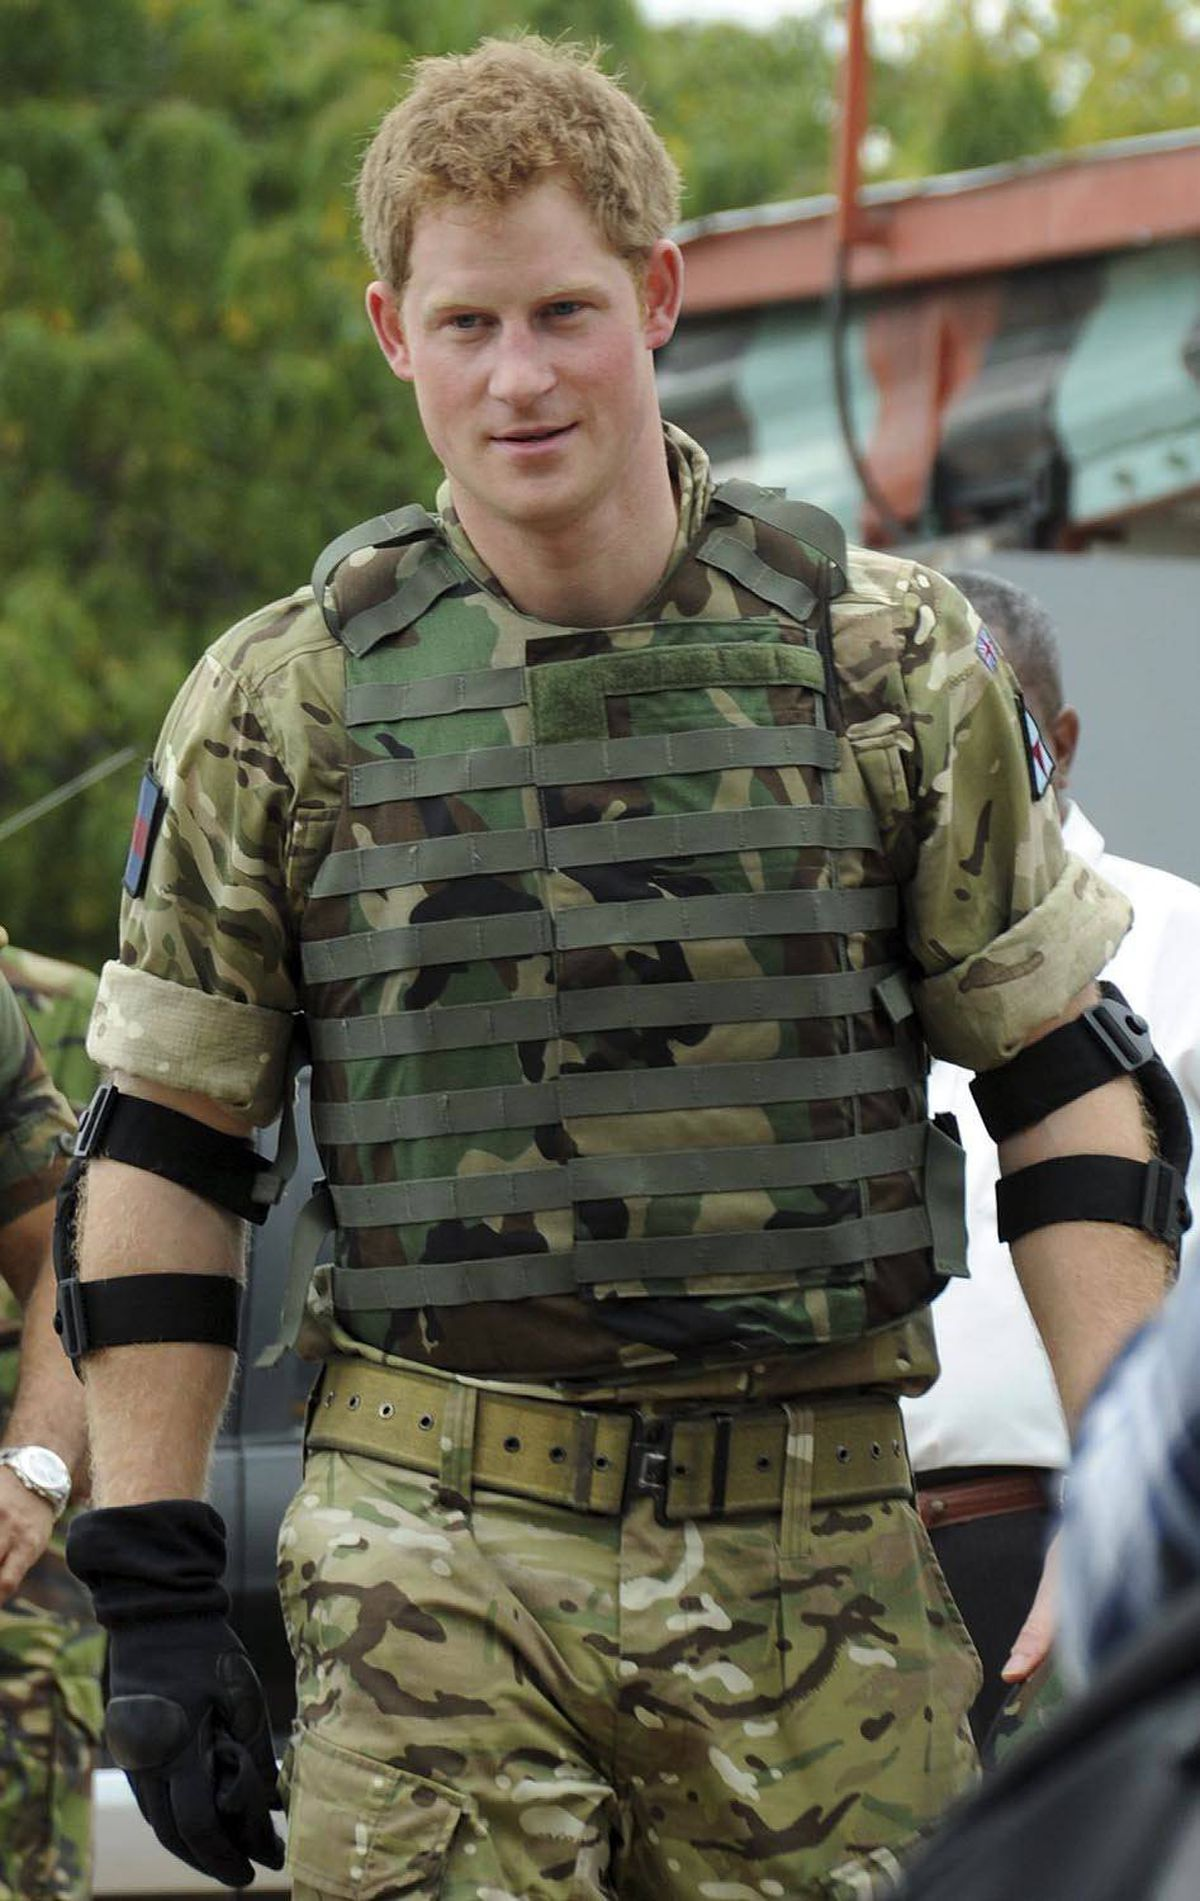 SOLDIER Britain's Prince Harry is seen after a target shooting practice at Jamaica Defense Force's Up Park Camp in Kingston, Jamaica, Wednesday, March 7, 2012.